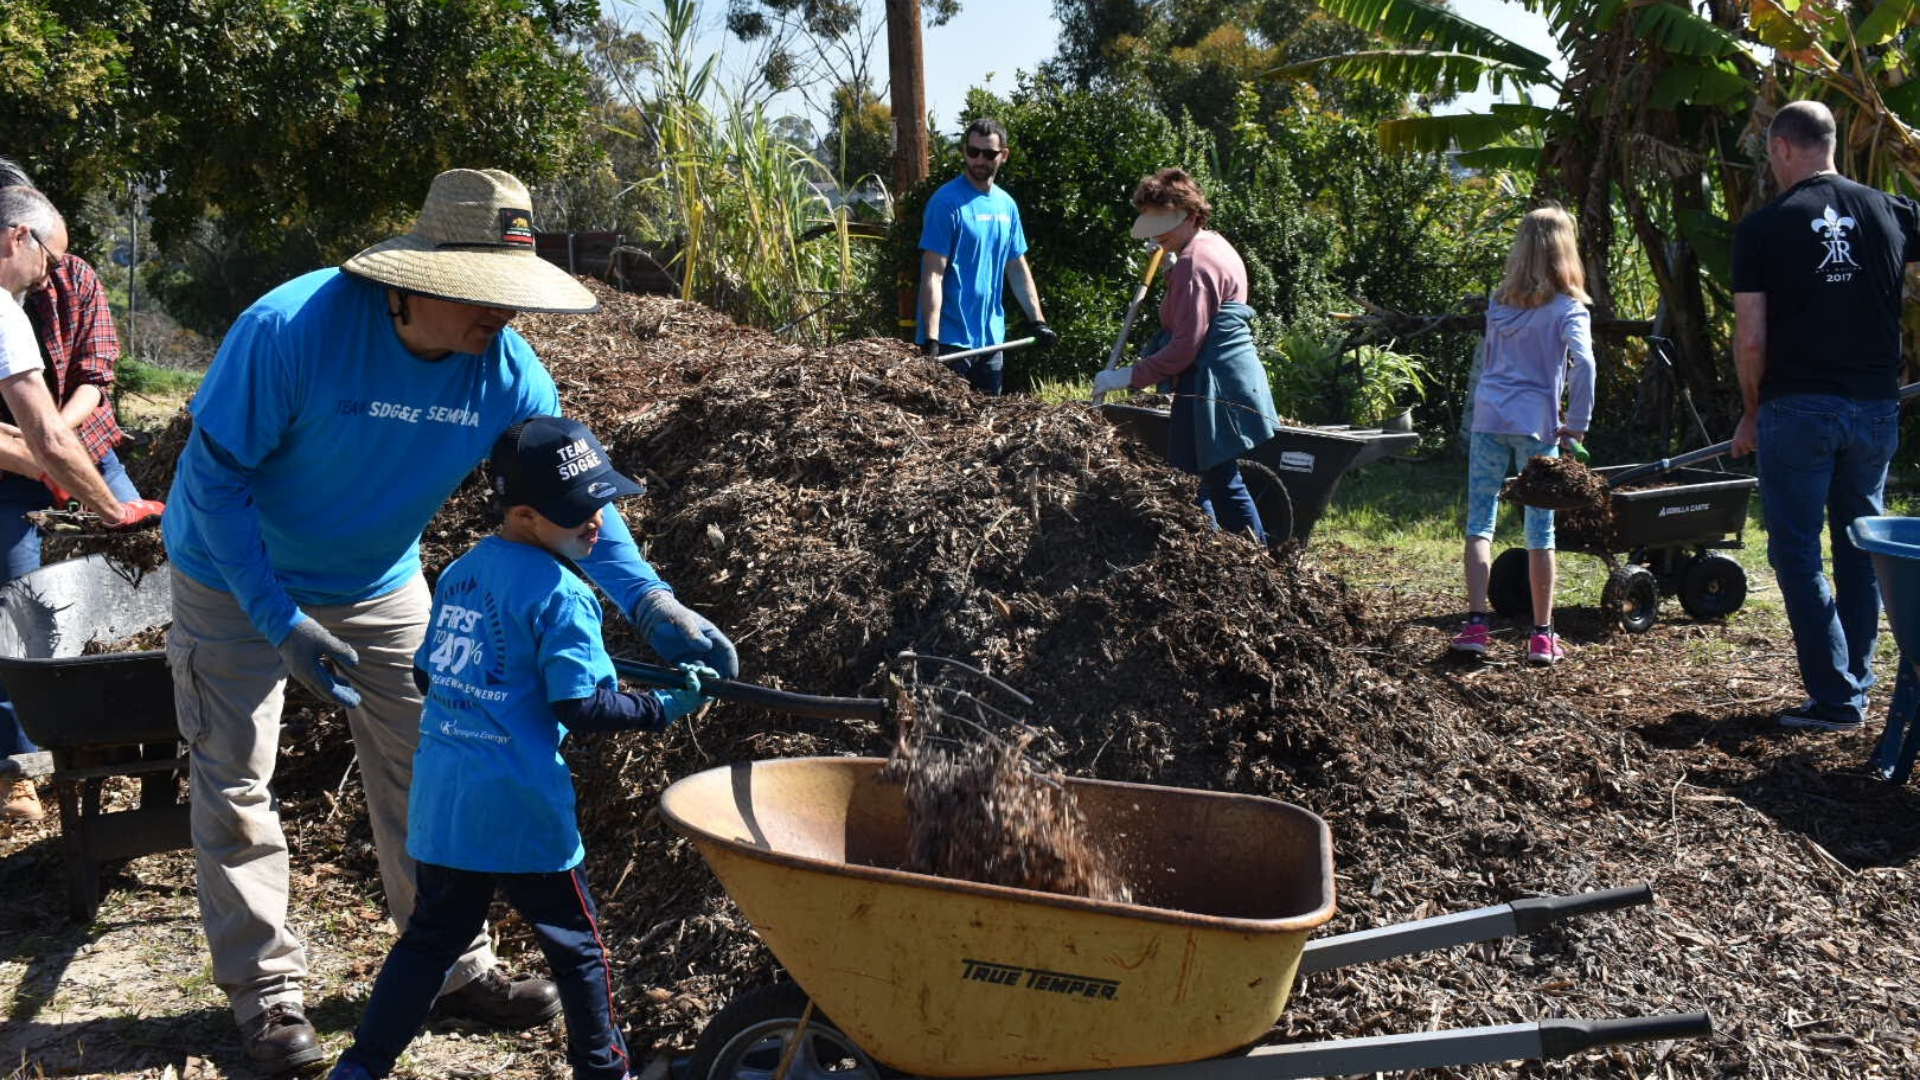 Team SDG&E volunteers work on beautification at Olivewood Gardens.